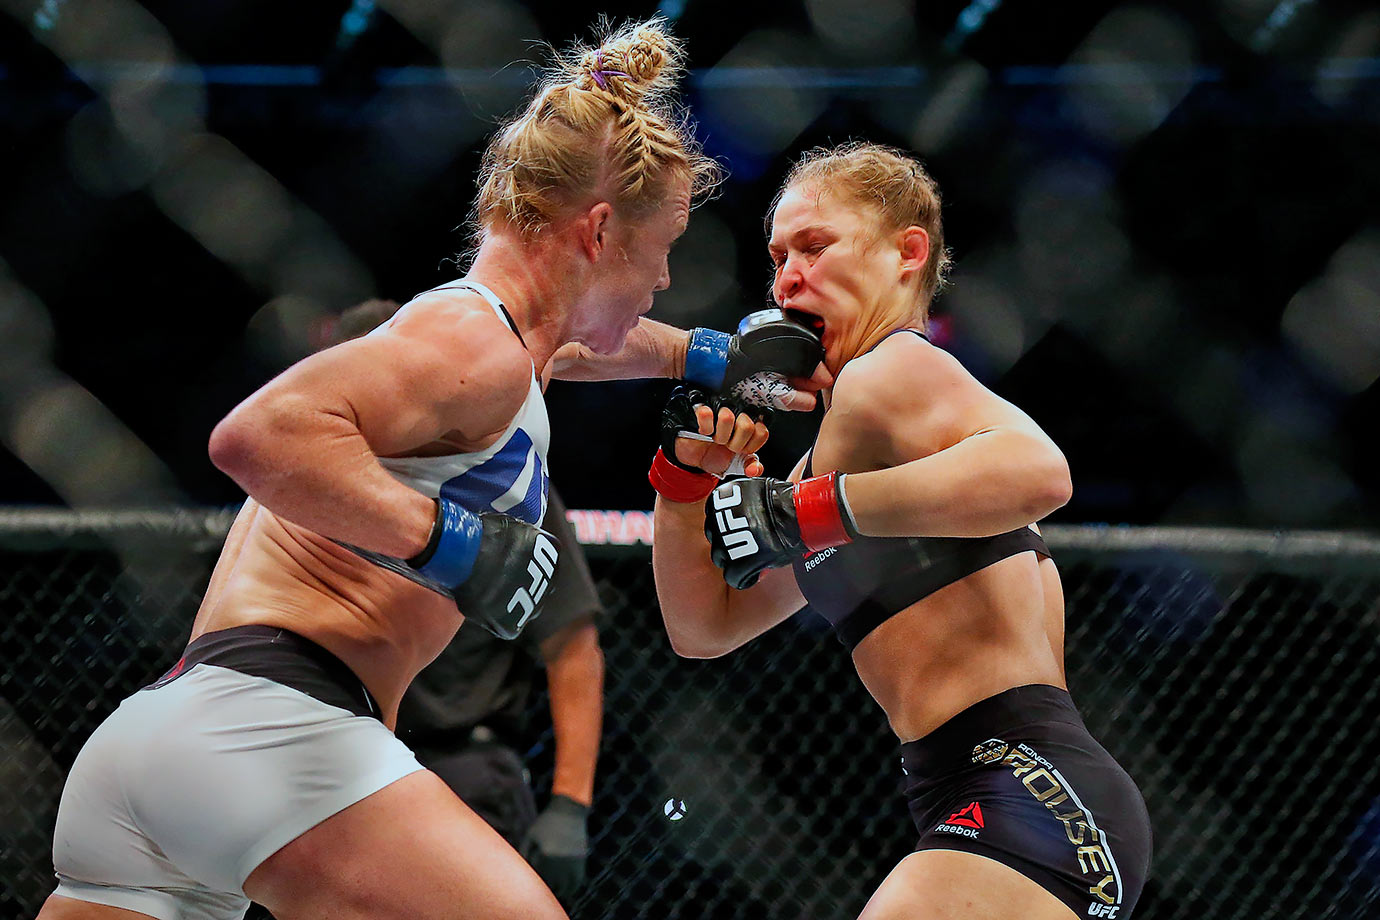 In a year that proved women's MMA is more exciting than the most anticipated boxing match in decades (Mayweather-Pacquiao), Holm landed a solid kick to the previously unbeaten Rousey for the unlikely knockout win. You can bet a Holm-Rousey rematch will build more excitement than Mayweather-Pacquiao II.